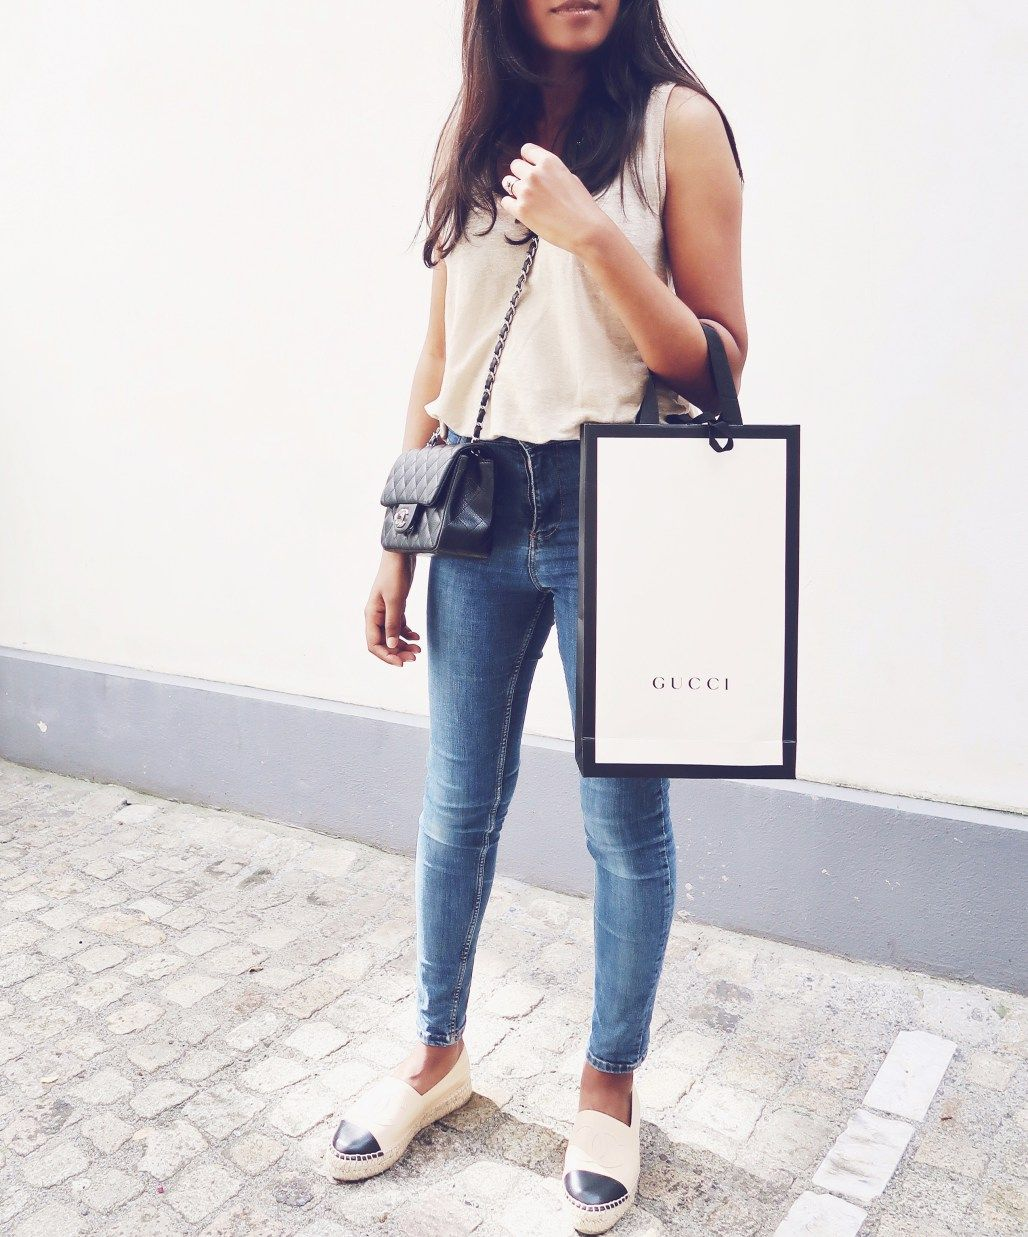 42fd8c70b9a Gucci. Shopping outfit. Chanel espadrilles outfit. Chanel square mini.